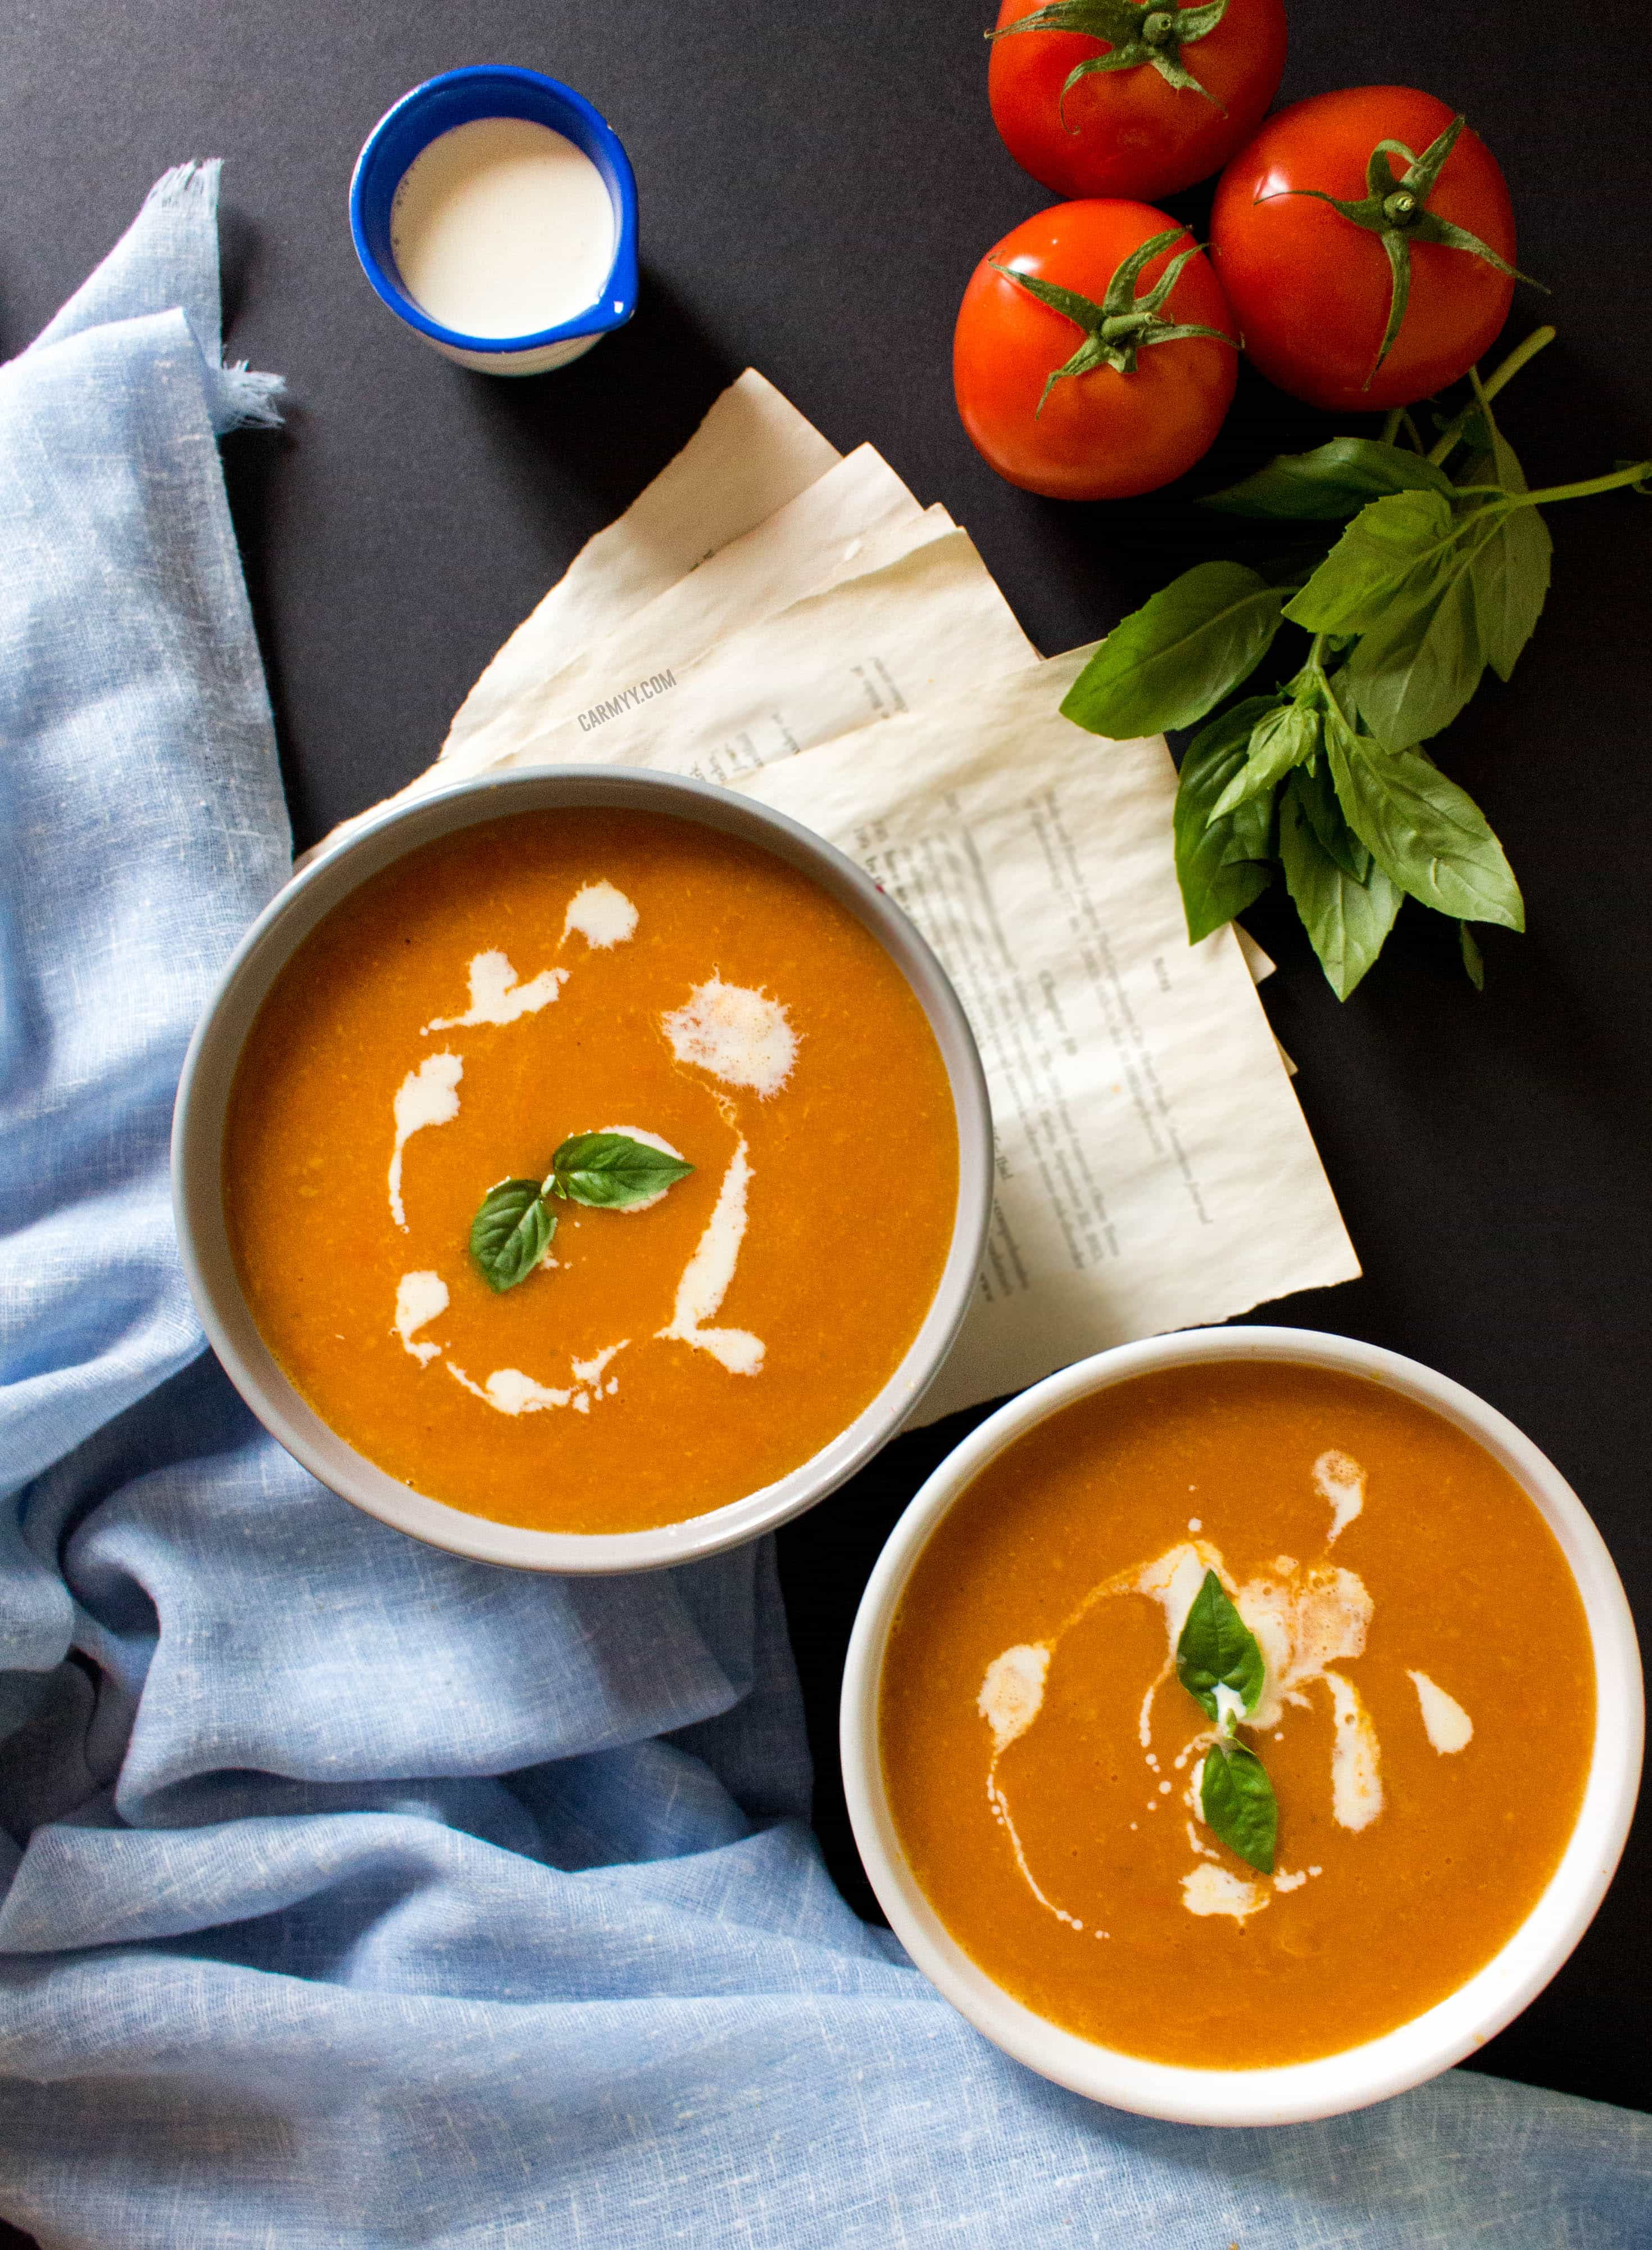 On rainy days where I want to snuggle up on the couch, my go-to soup is this very easy roasted tomato and garlic soup.